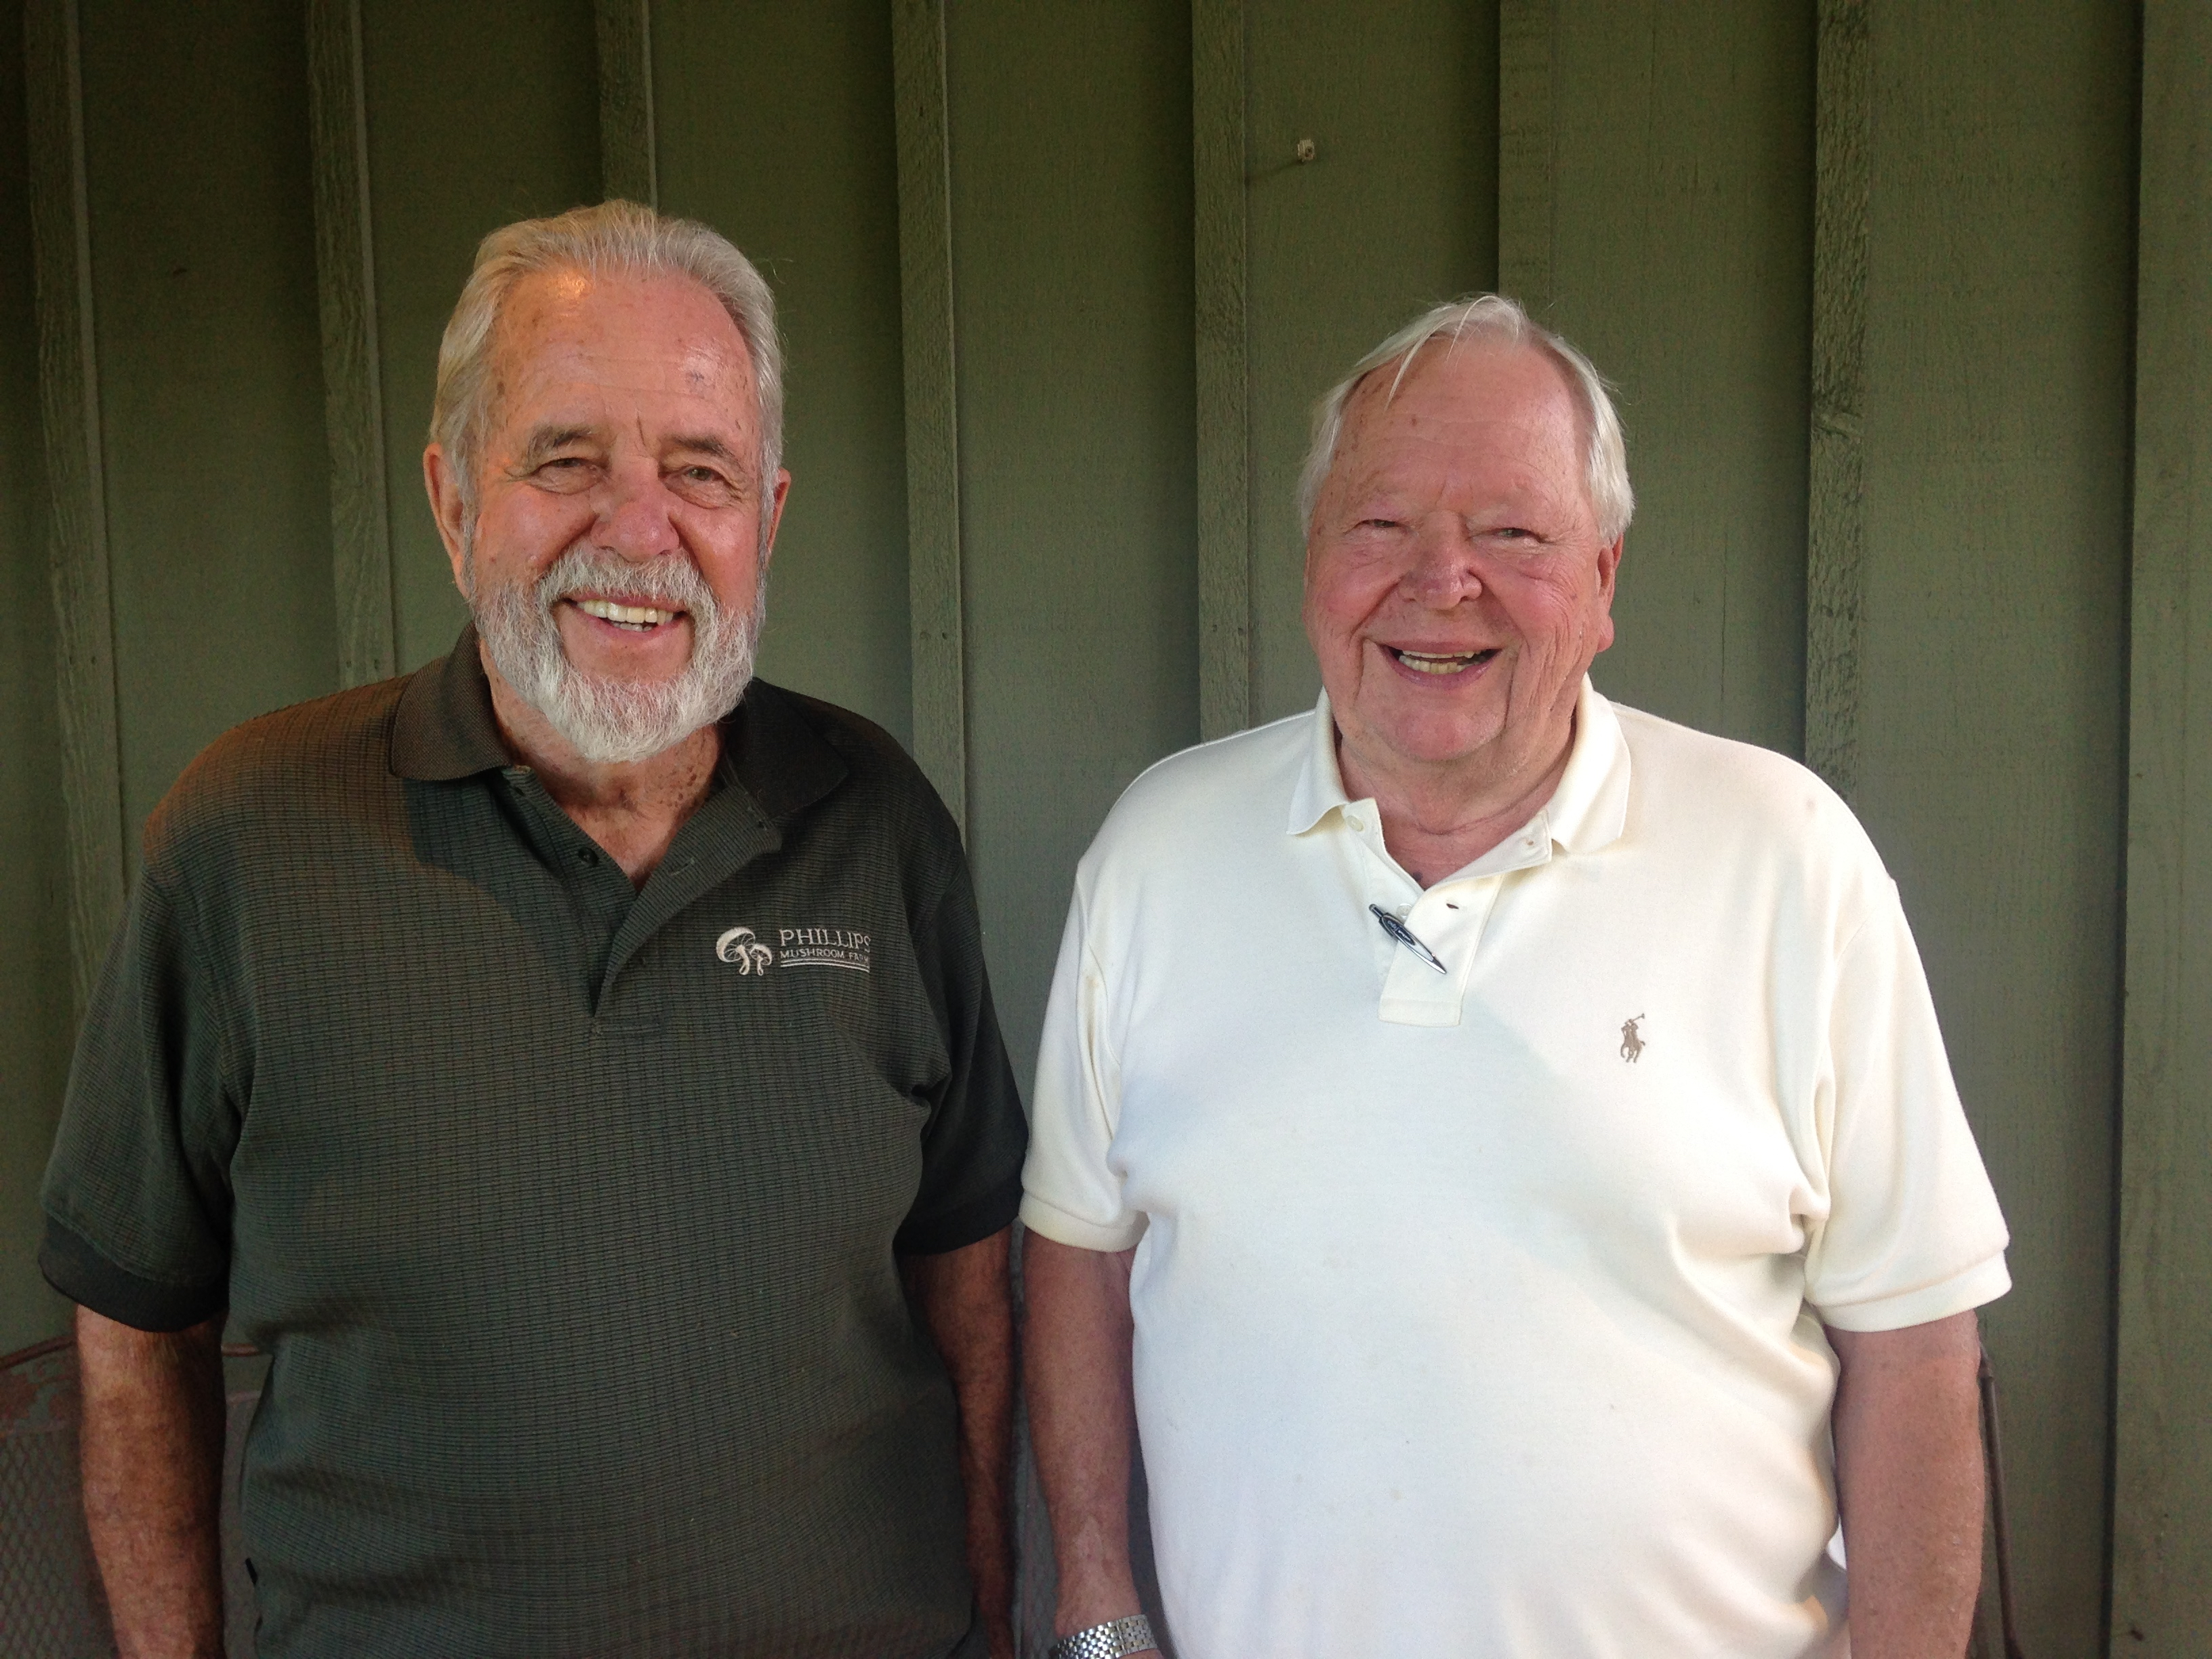 Interview with Donald and Marshall Phillips